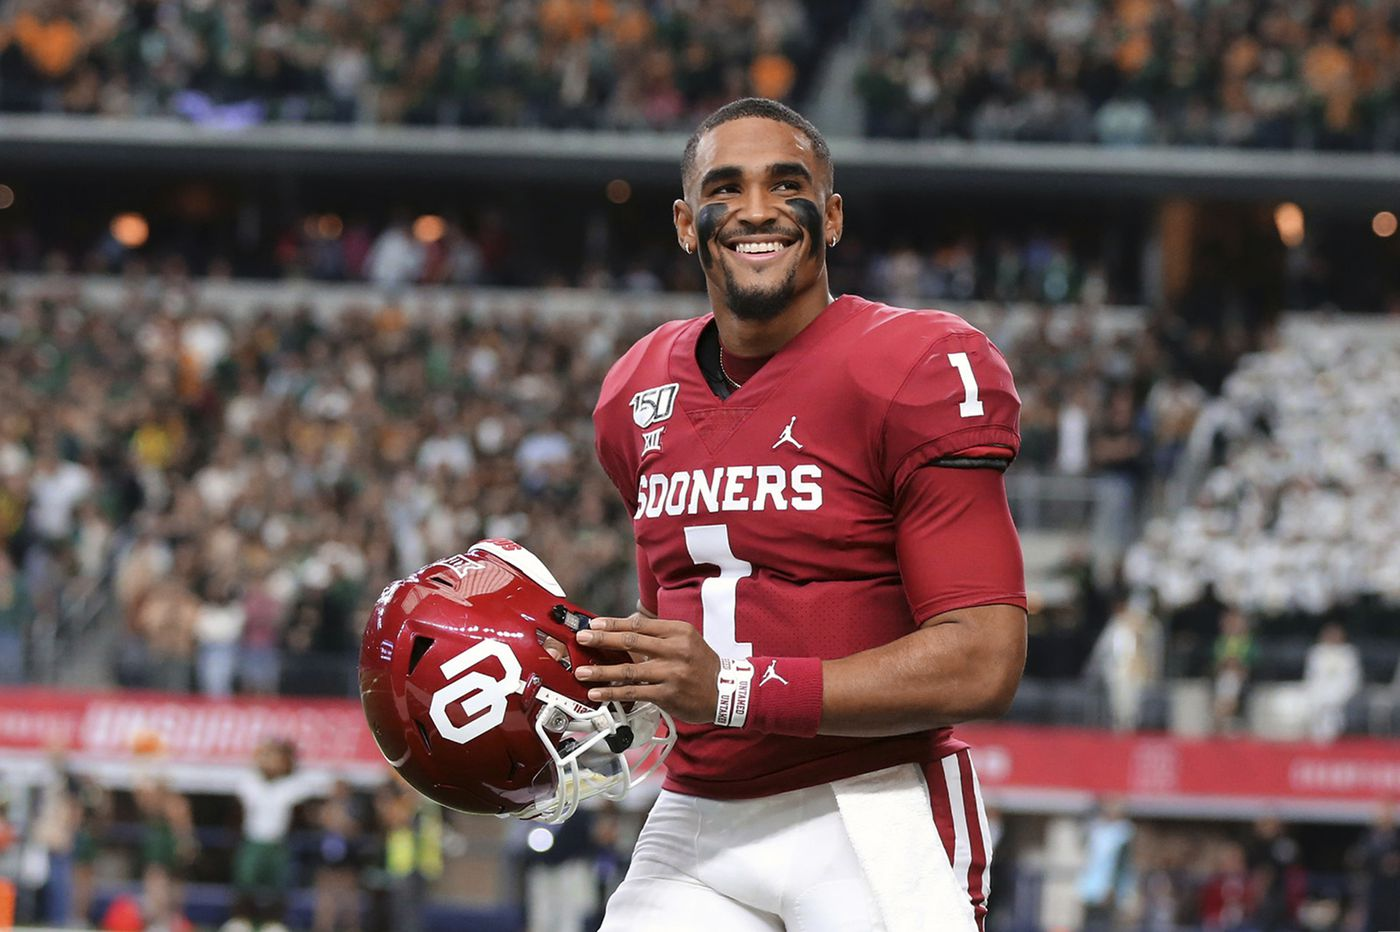 Rating the draft: Eagles beat writers weigh in on the team's decision to take QB Jalen Hurts in the second round